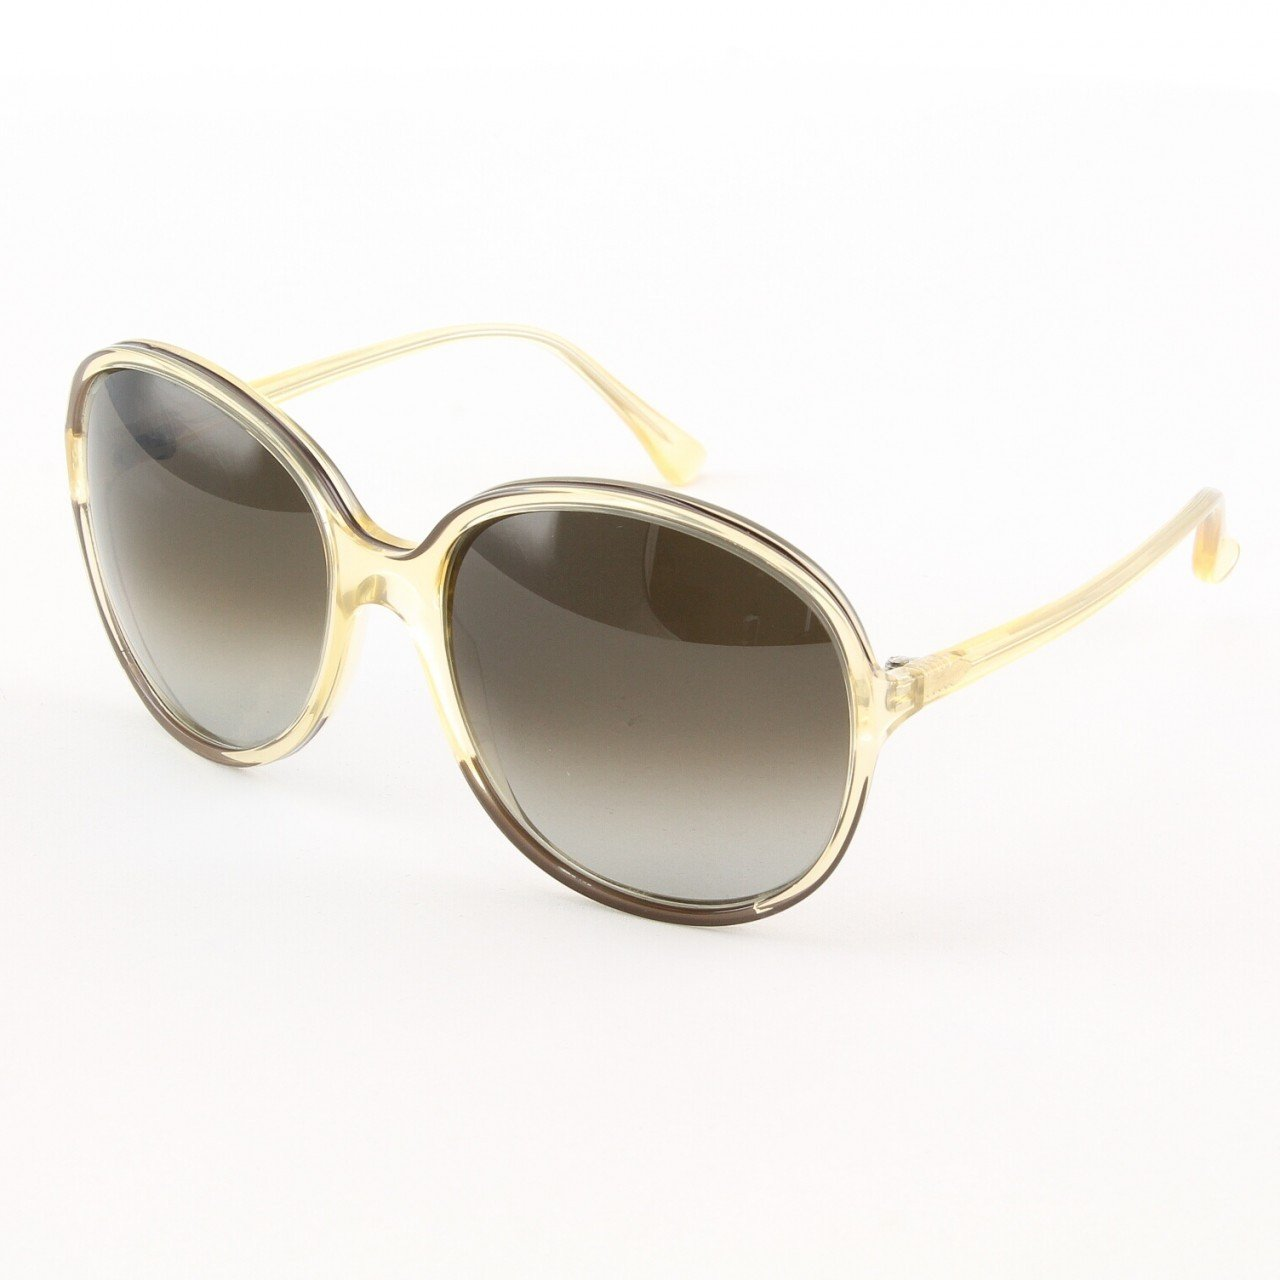 Marni MA165S Sunglasses Col. 06 Oversized Translucent Cream Frame with Brown Gradient Lenses